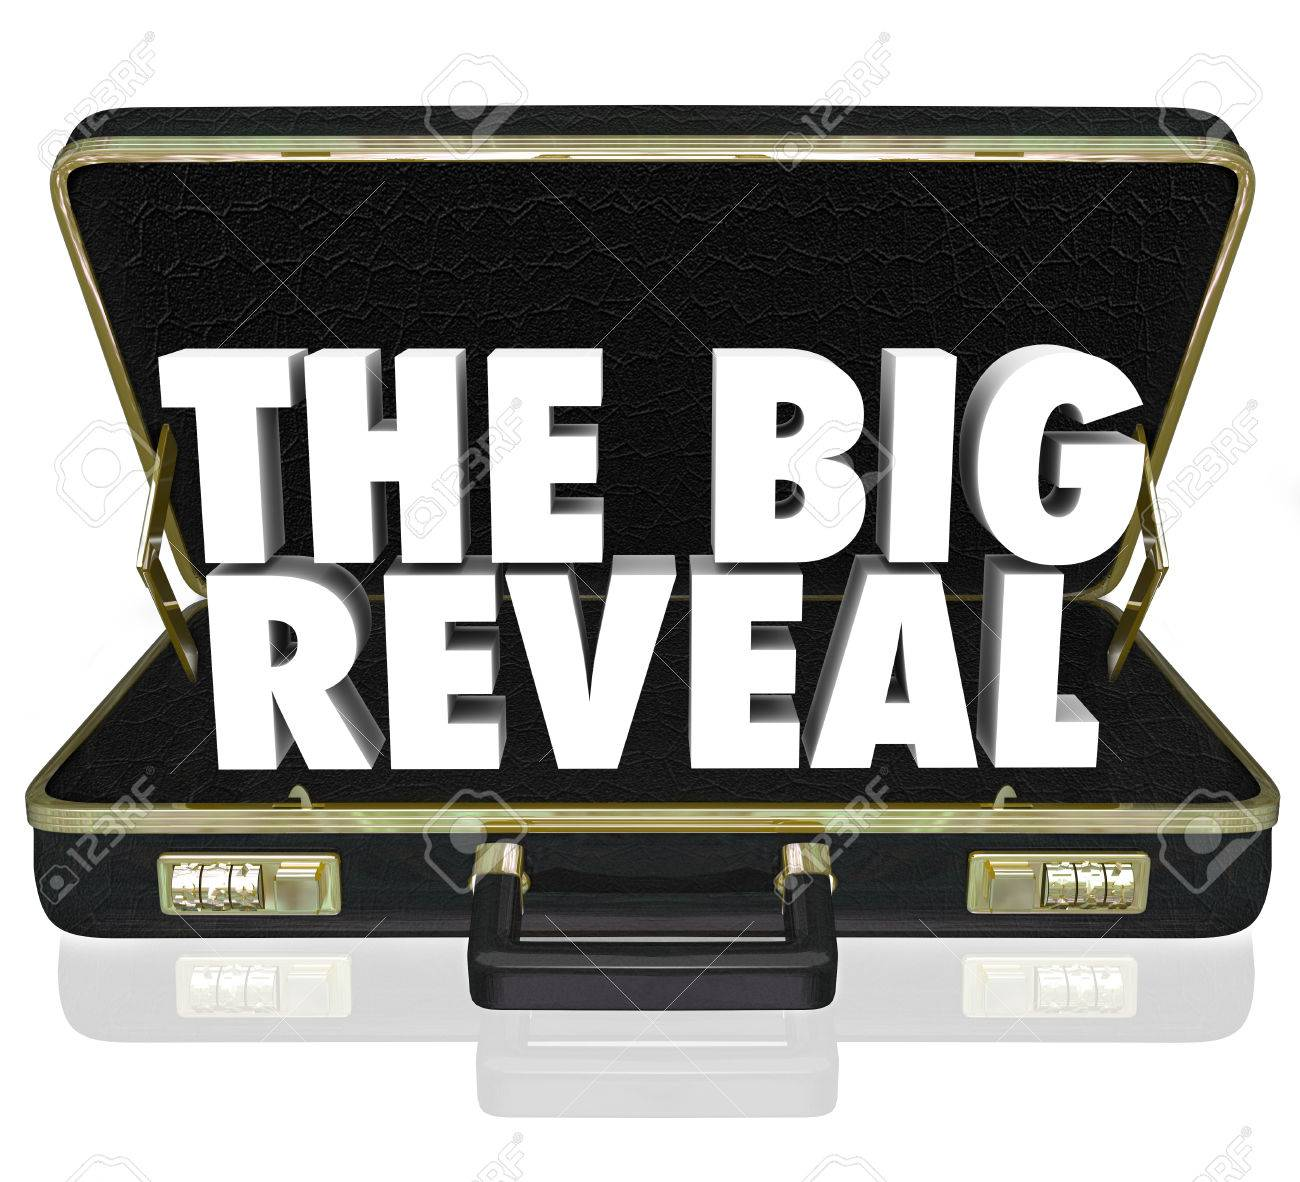 A black leather briefcase with words The Big Reveal inside as a surprise or shocking discovery being shared or presented with an audience or customer Stock Photo - 23322953